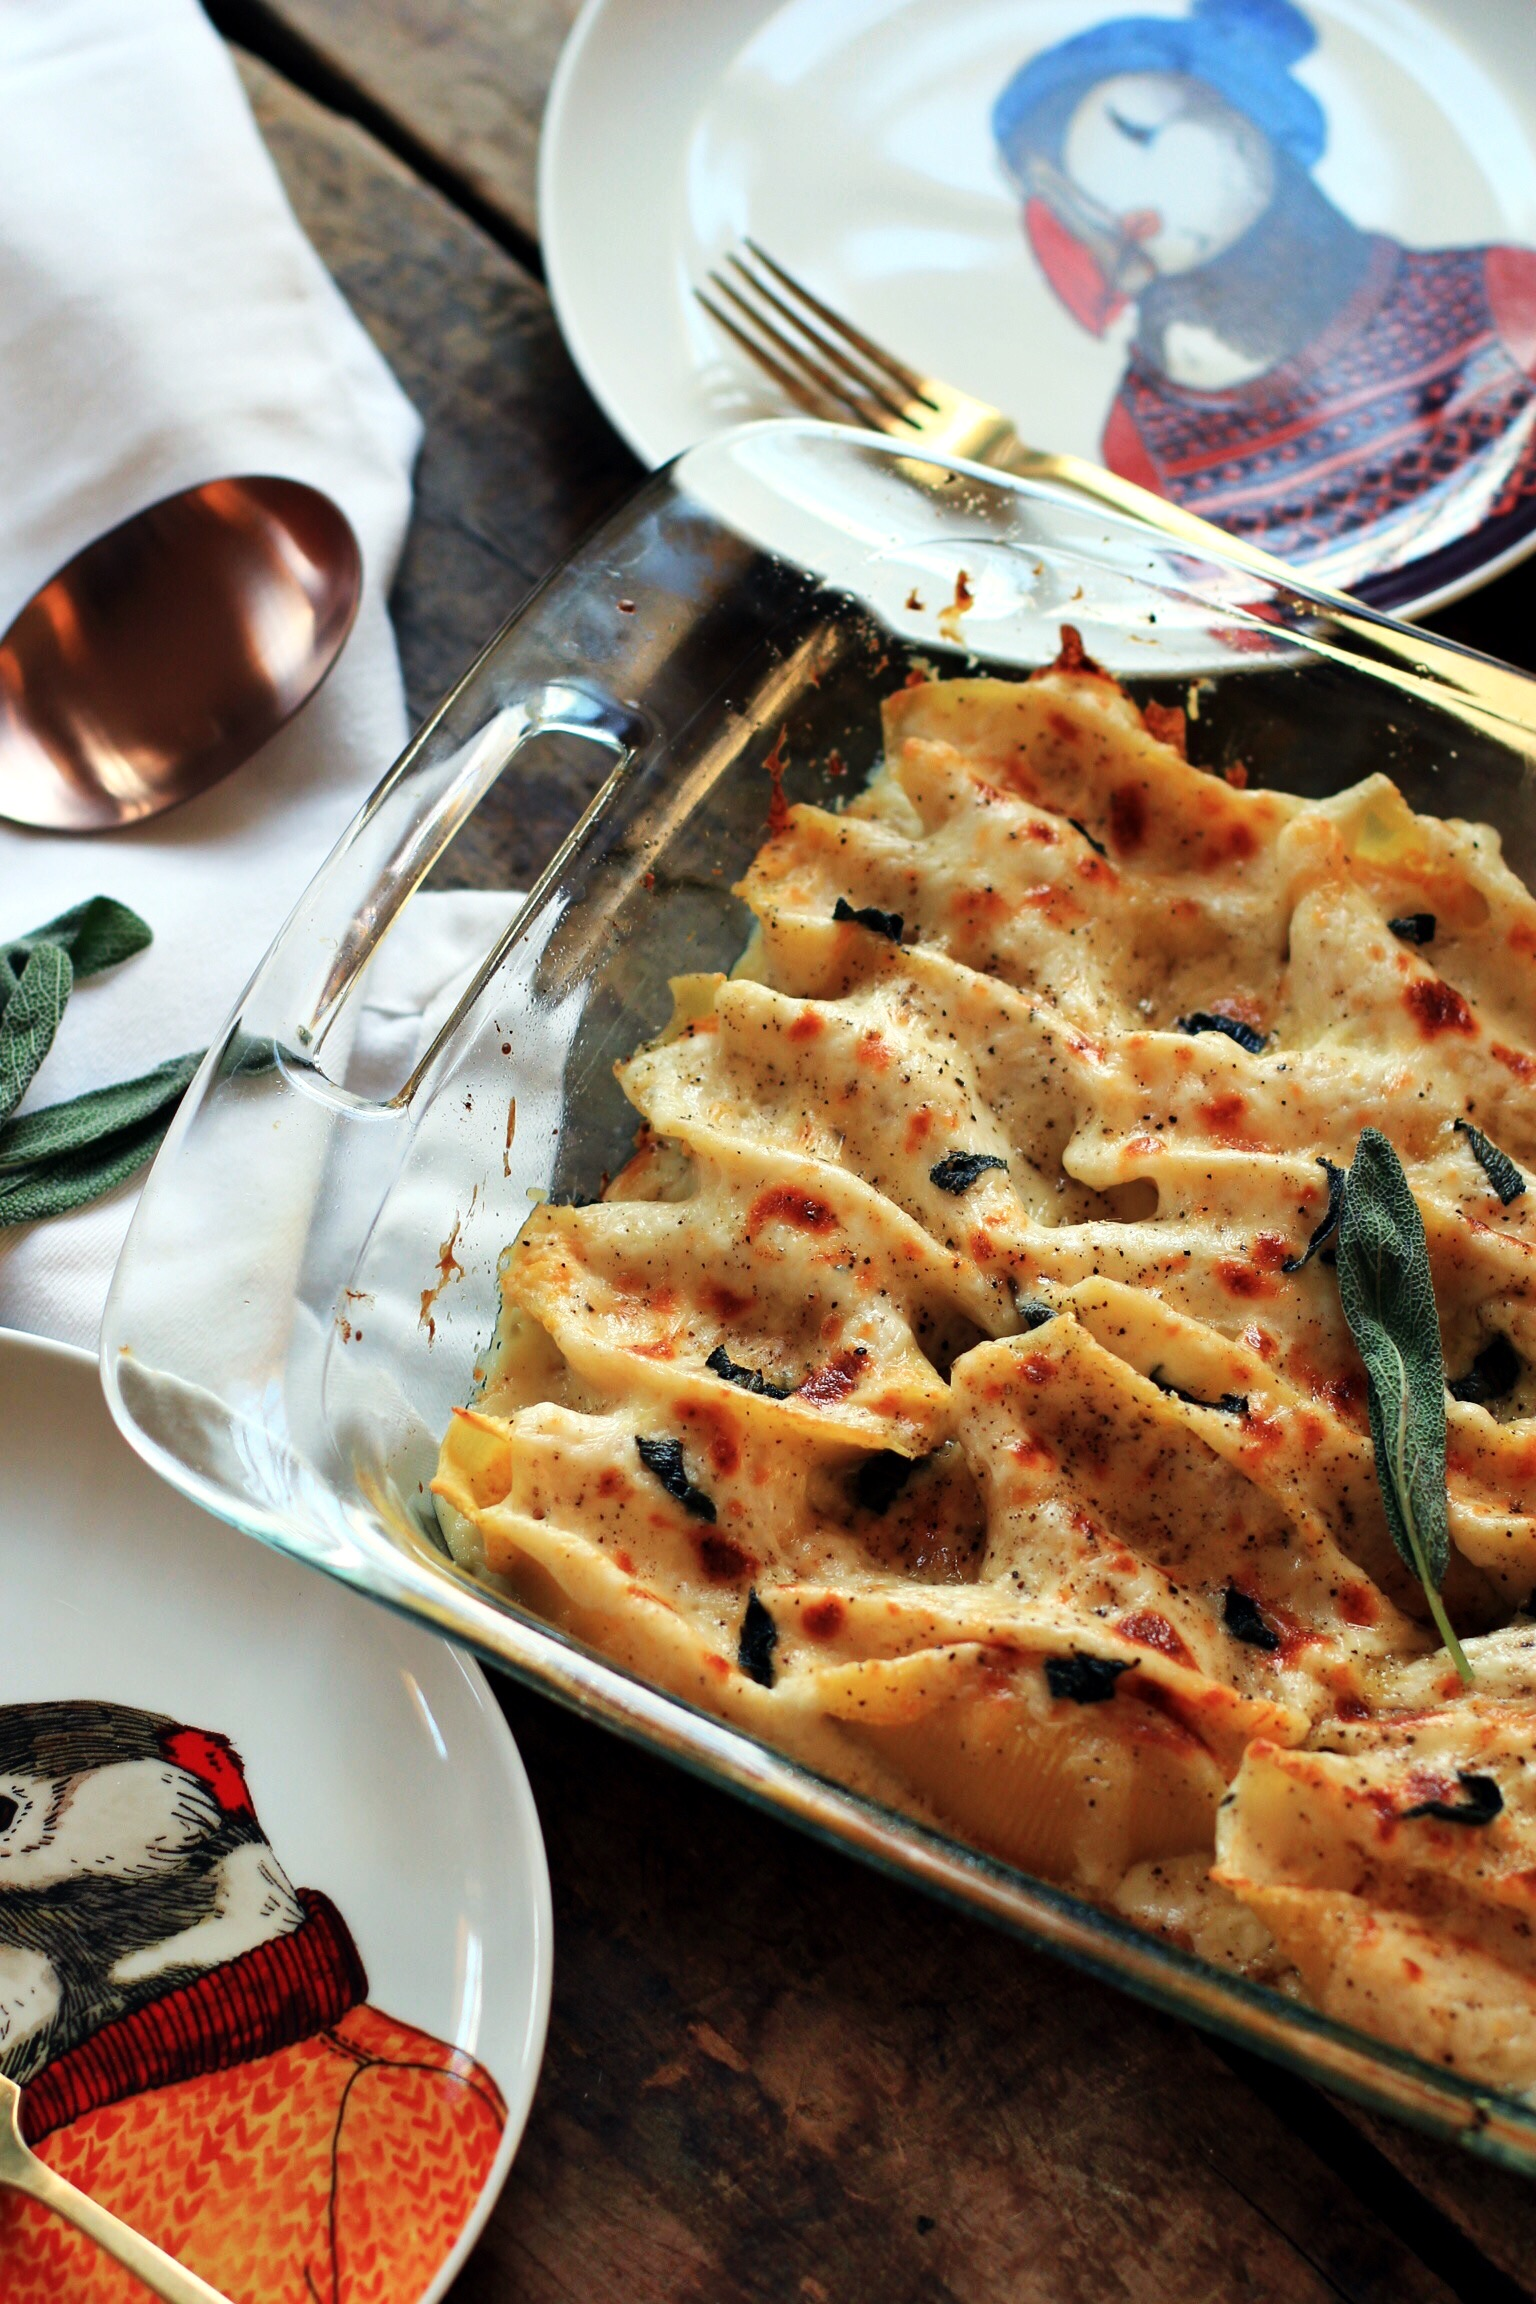 Butternut squash and ricotta stuffed shells with garlic bechamel - The Pastiche